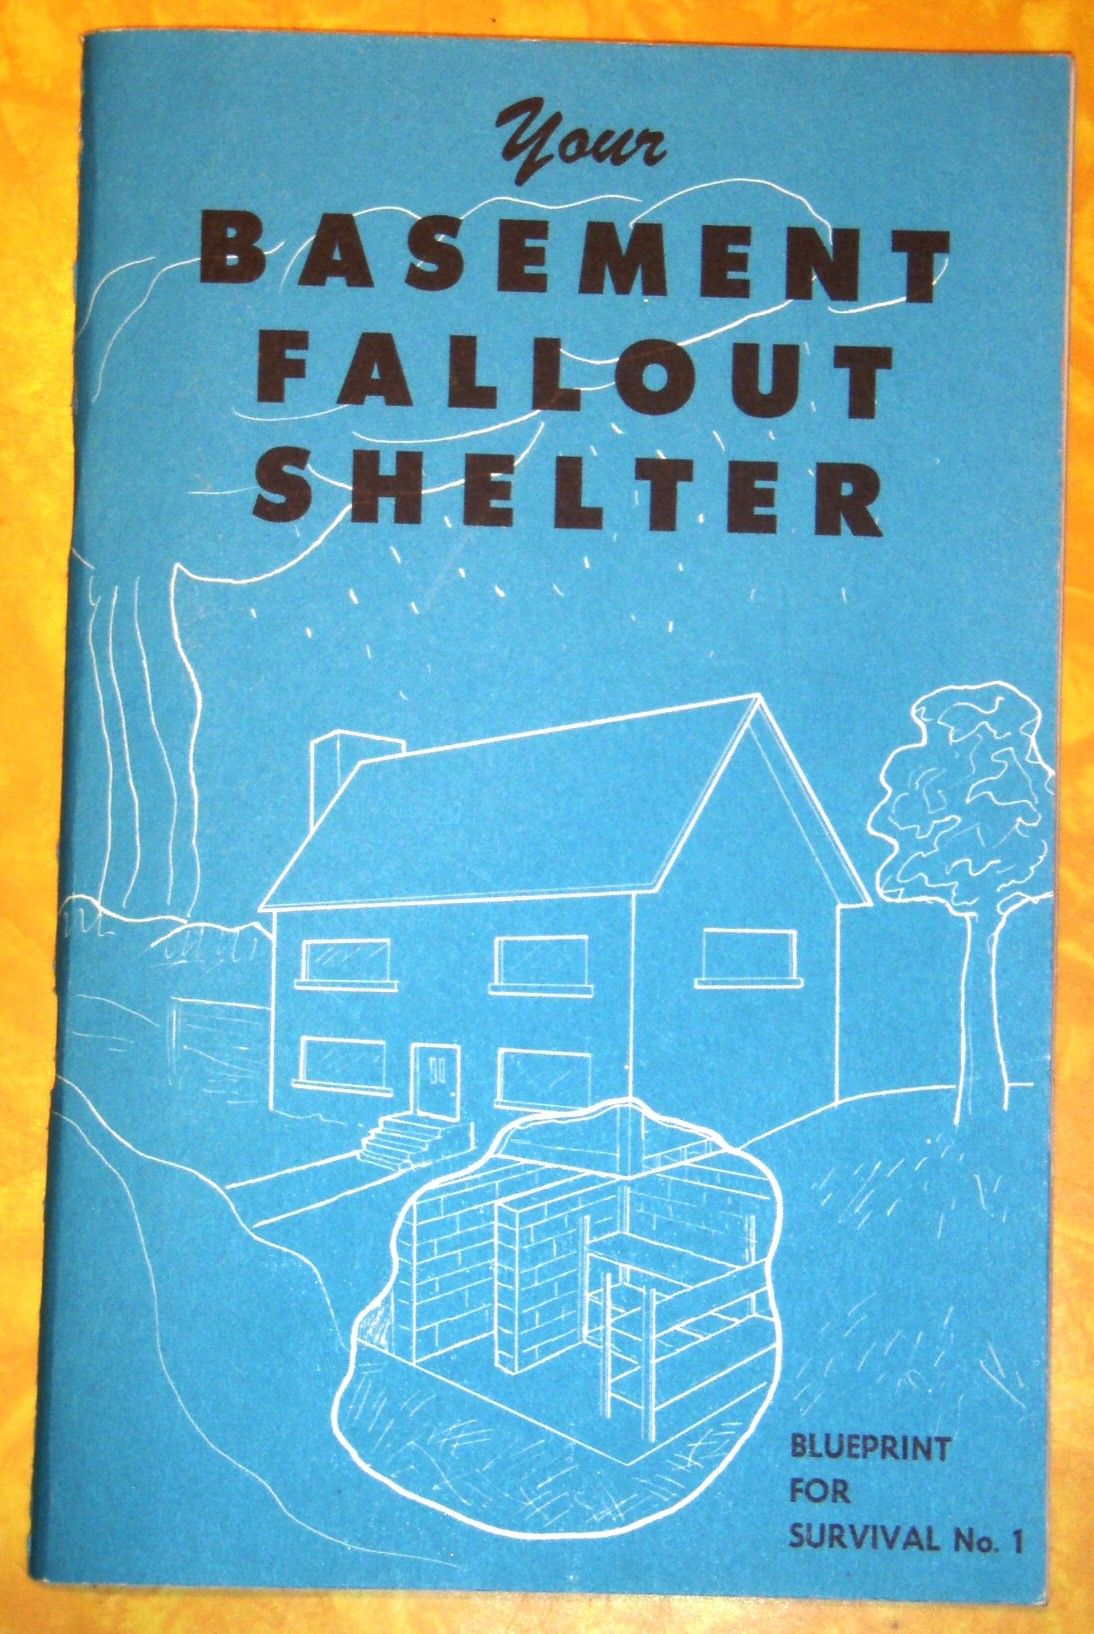 Prepper your basement fallout shelter blueprint for survival no prepper your basement fallout shelter blueprint for survival no1 pdf malvernweather Image collections